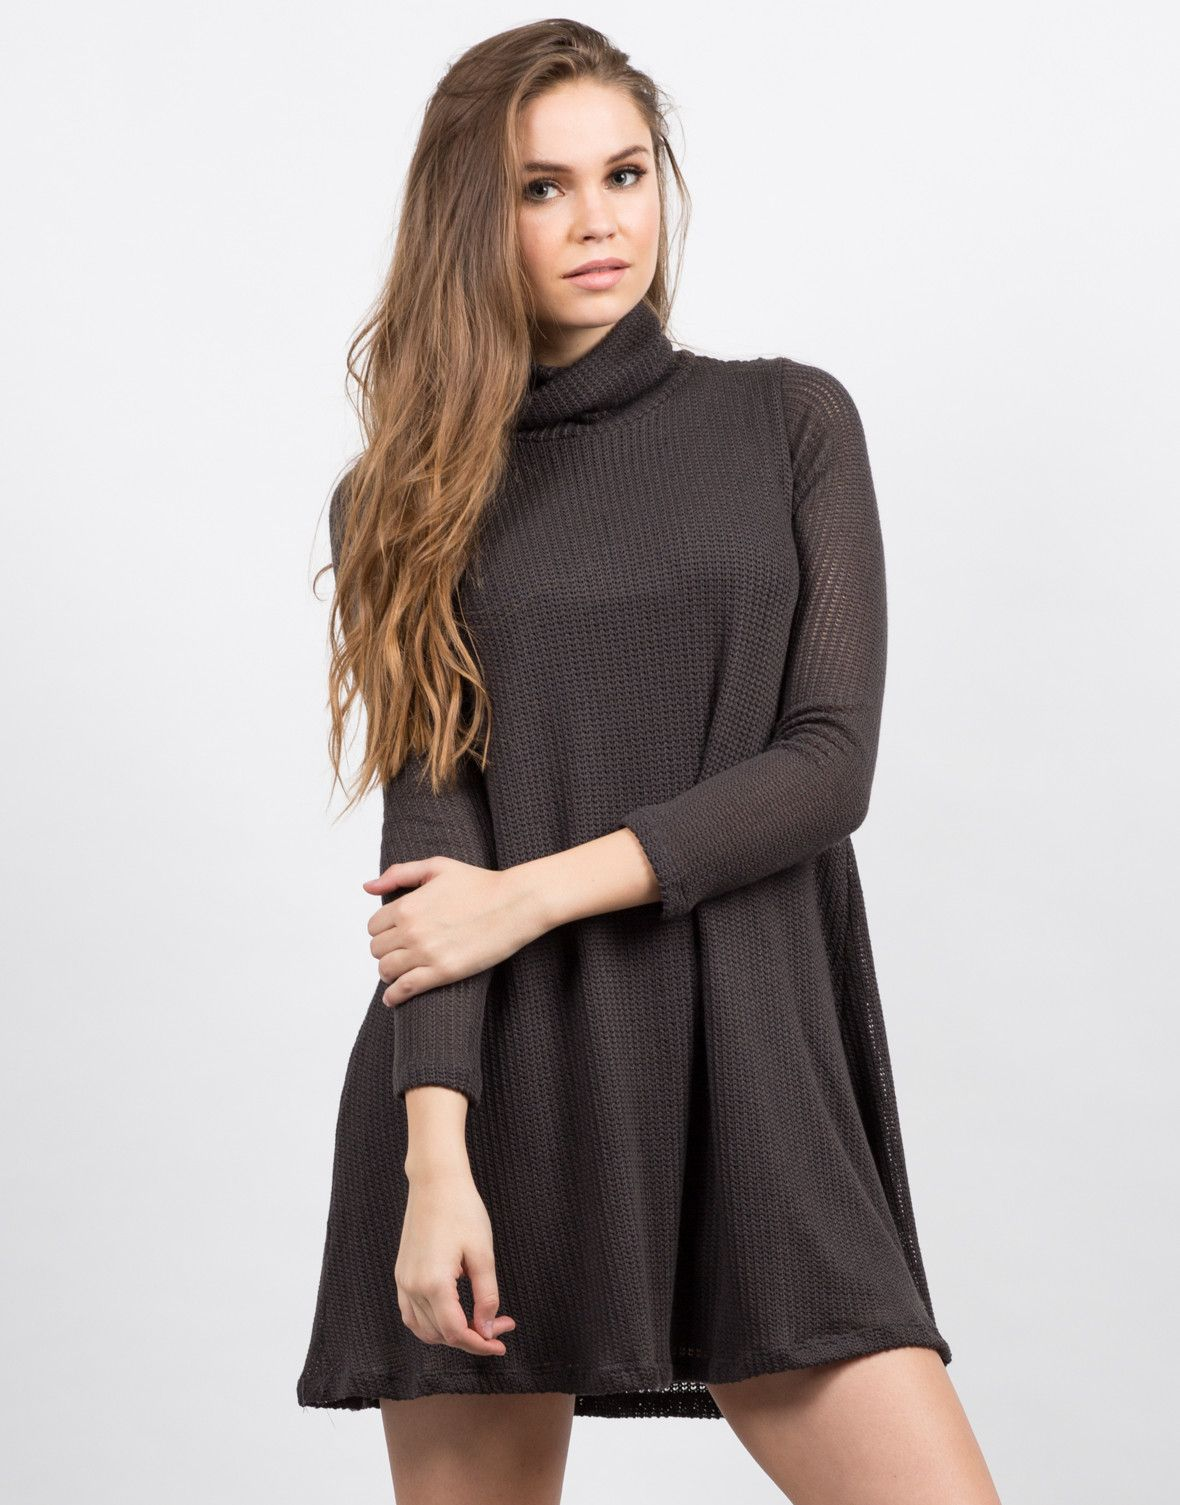 Knitted Sweater Dress Turtleneck dress Dresses dresses and